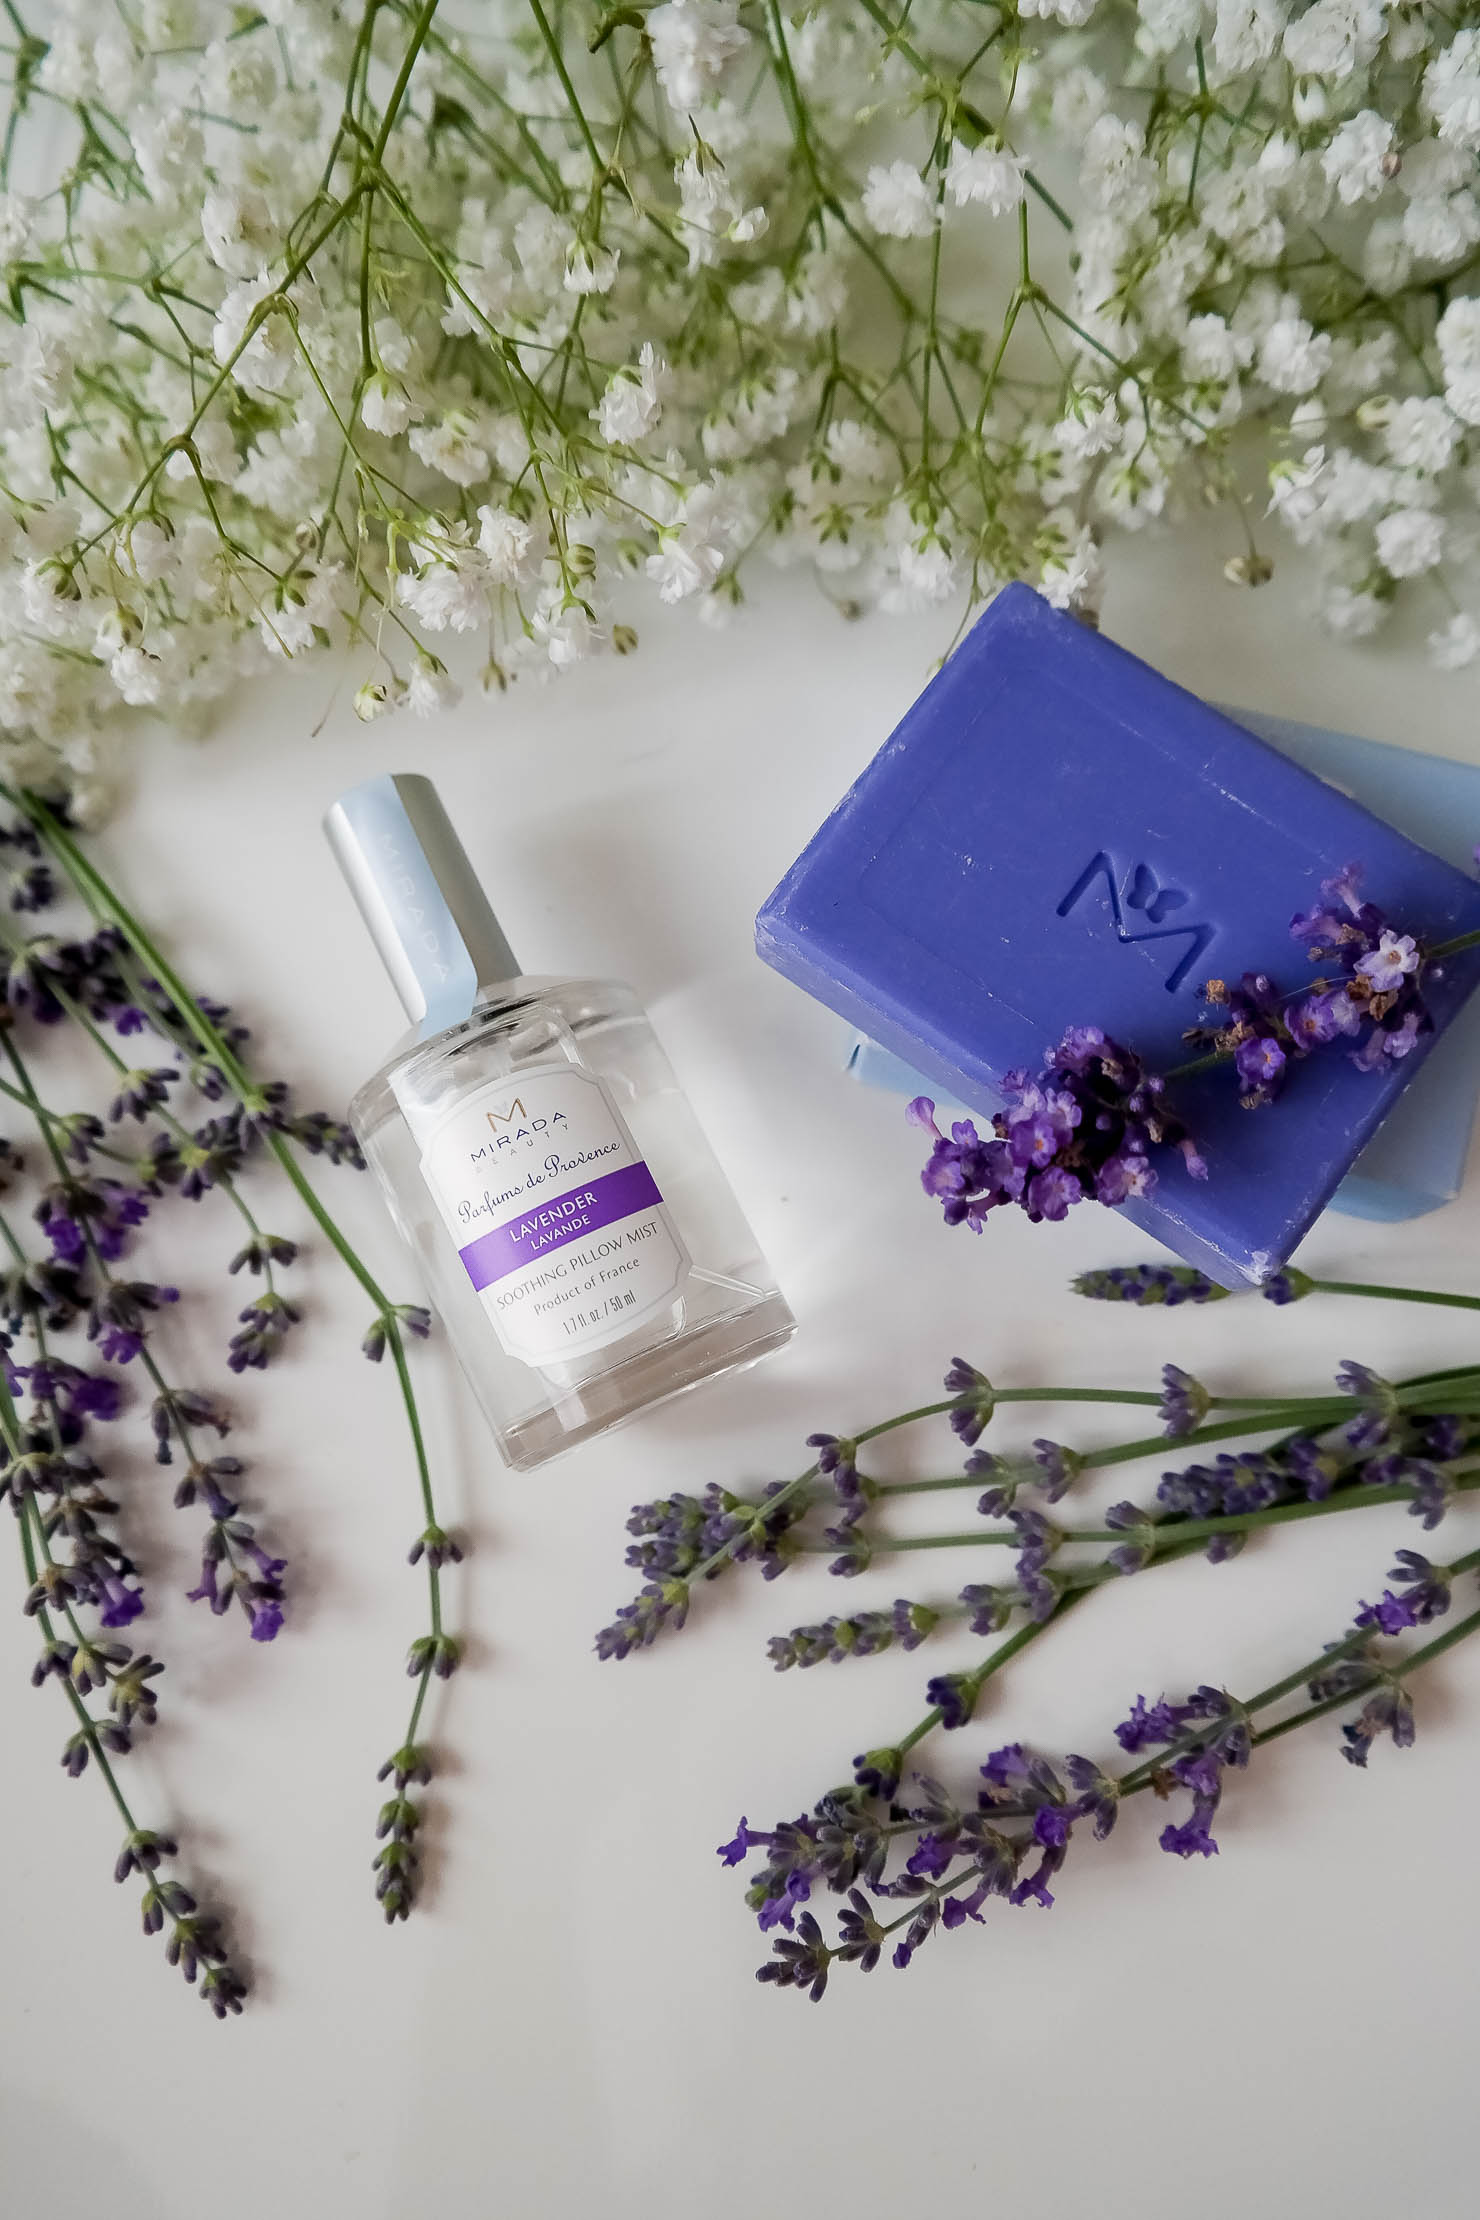 mirada-de-provence-power-of-scent-aromatherapy-lavender-body-care-beauty